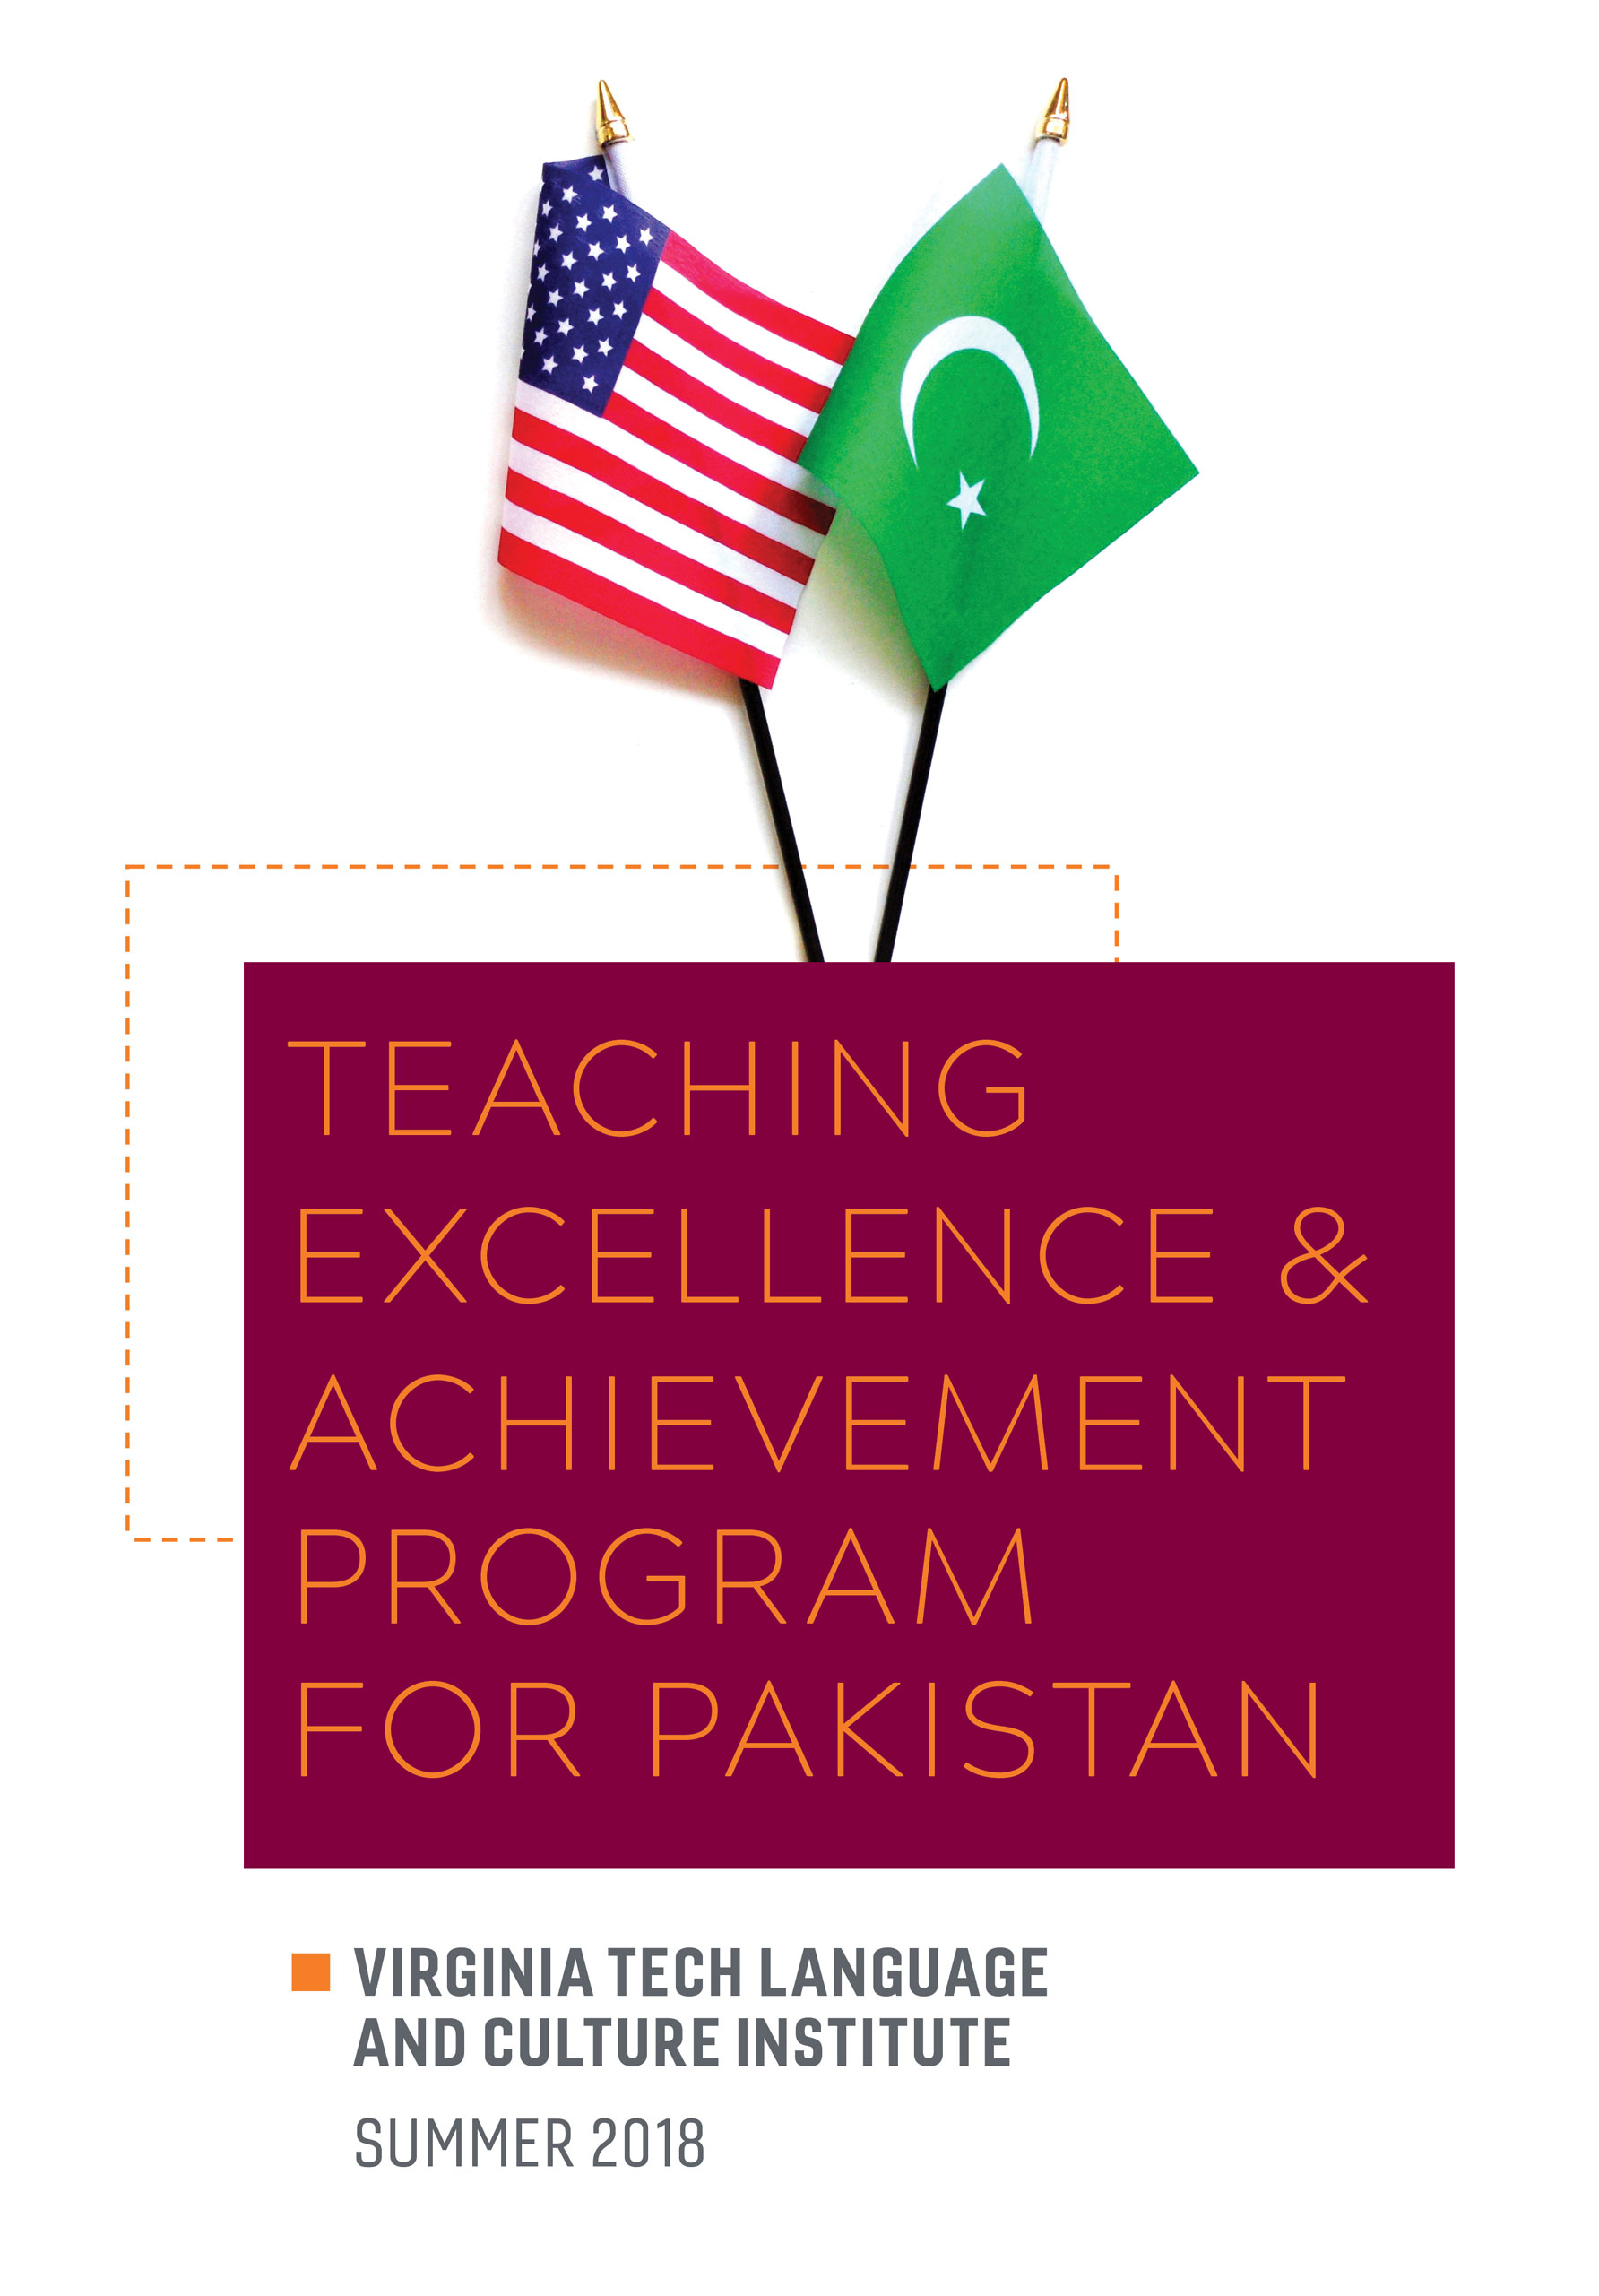 Cover of the TEA Program for Pakistan brochure